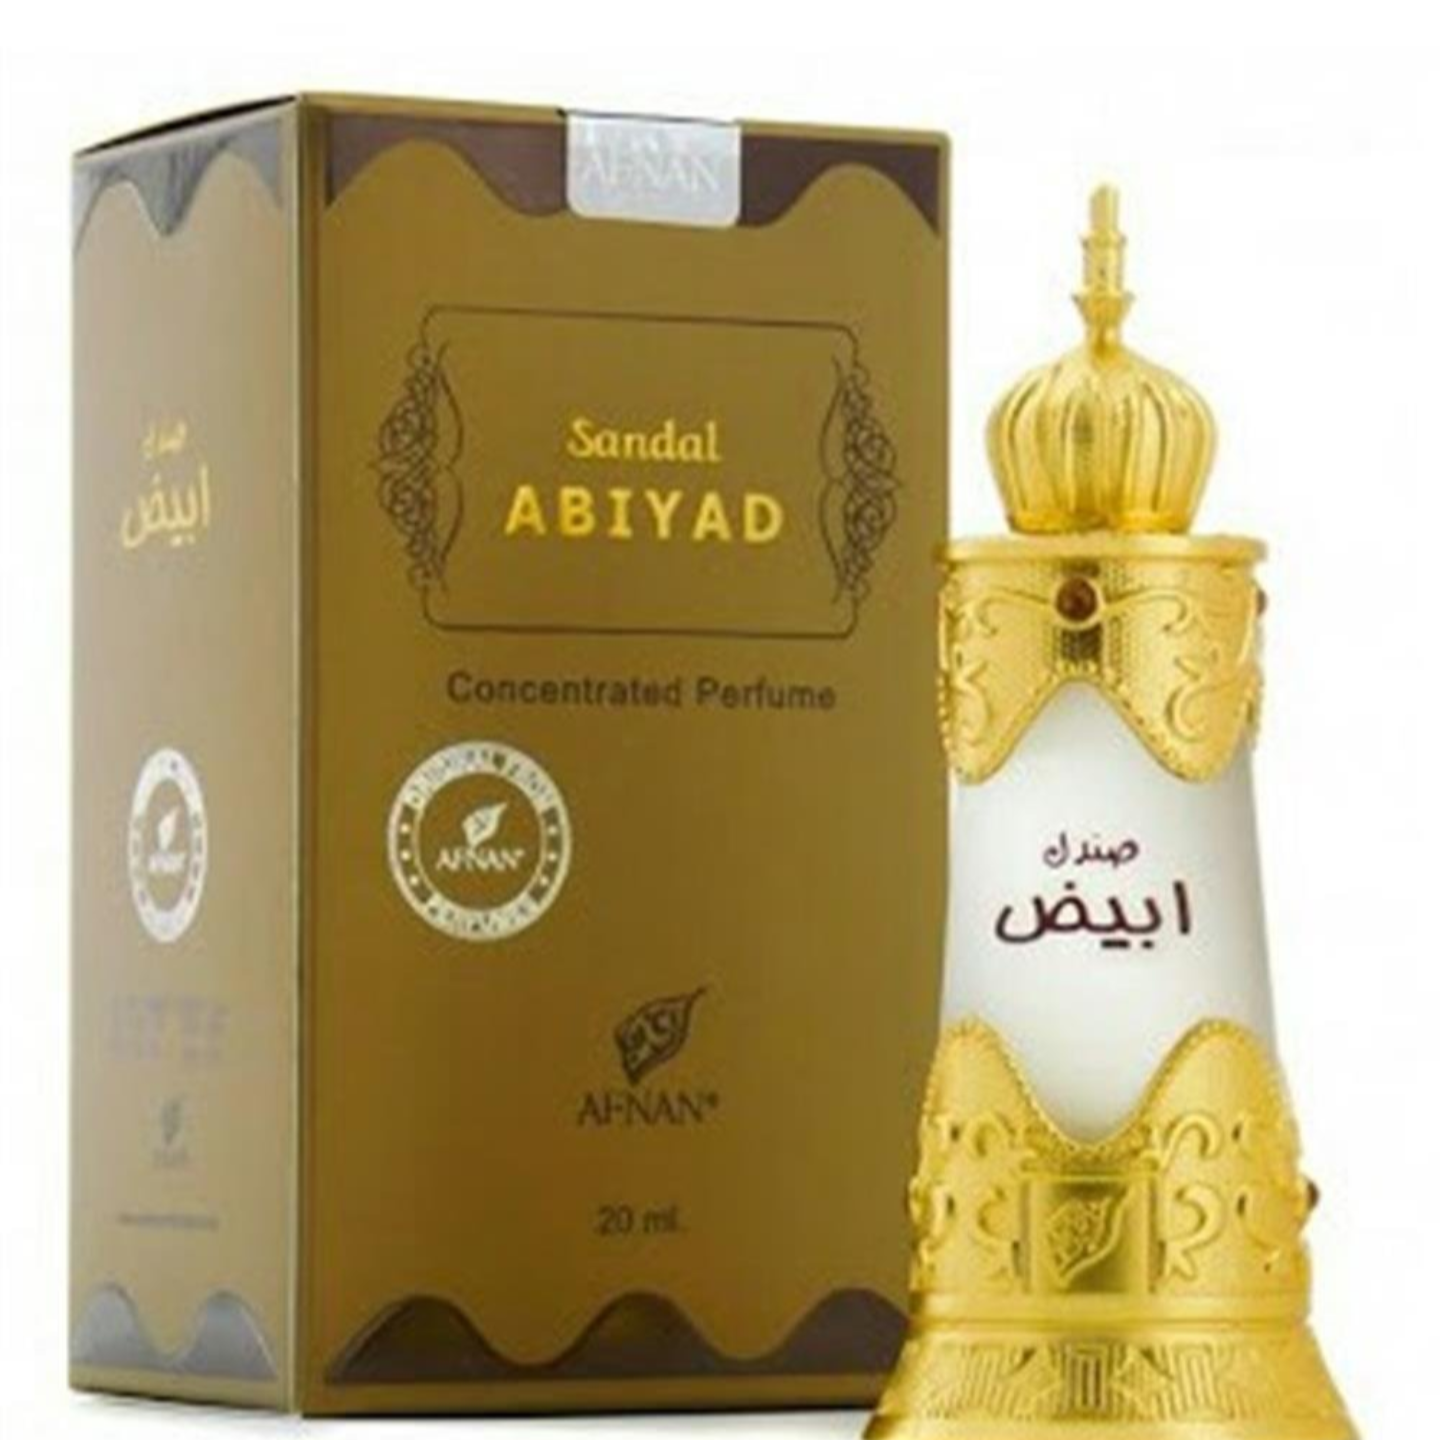 SANDAL ABIYAD ATTAR BY AFNAN